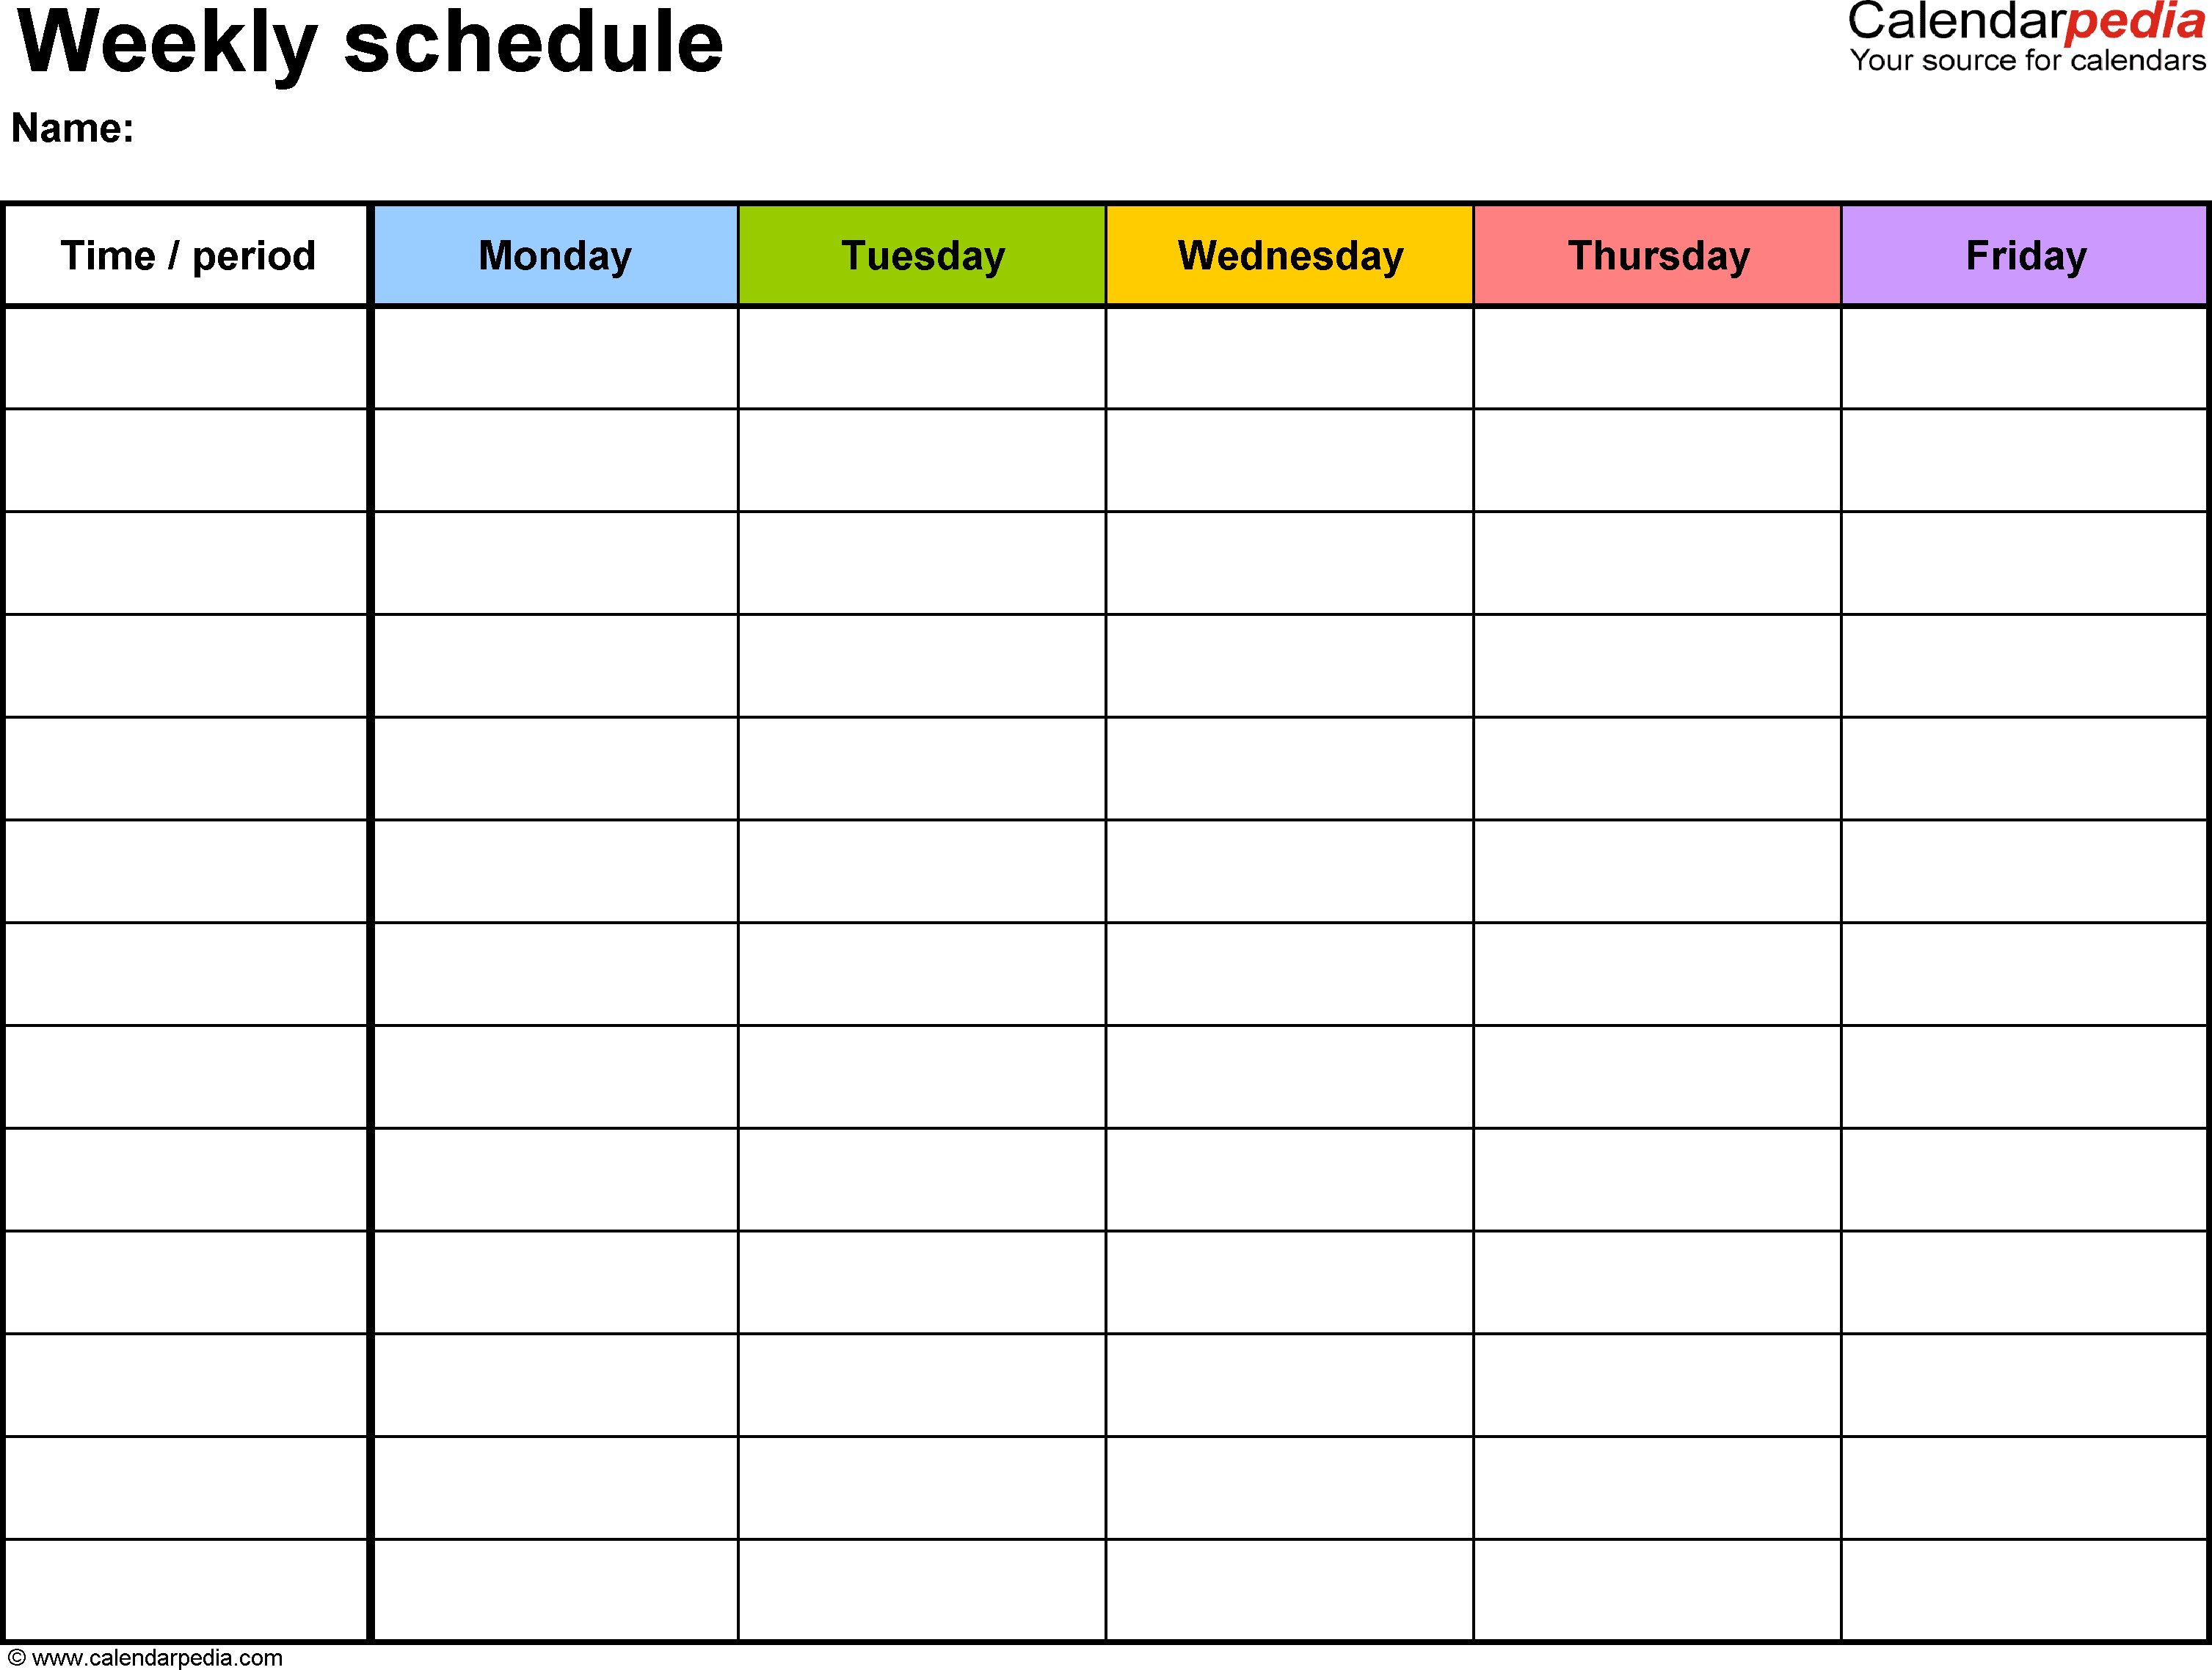 End Of Period Spreadsheet Template With Free Weekly Schedule Templates For Excel  18 Templates